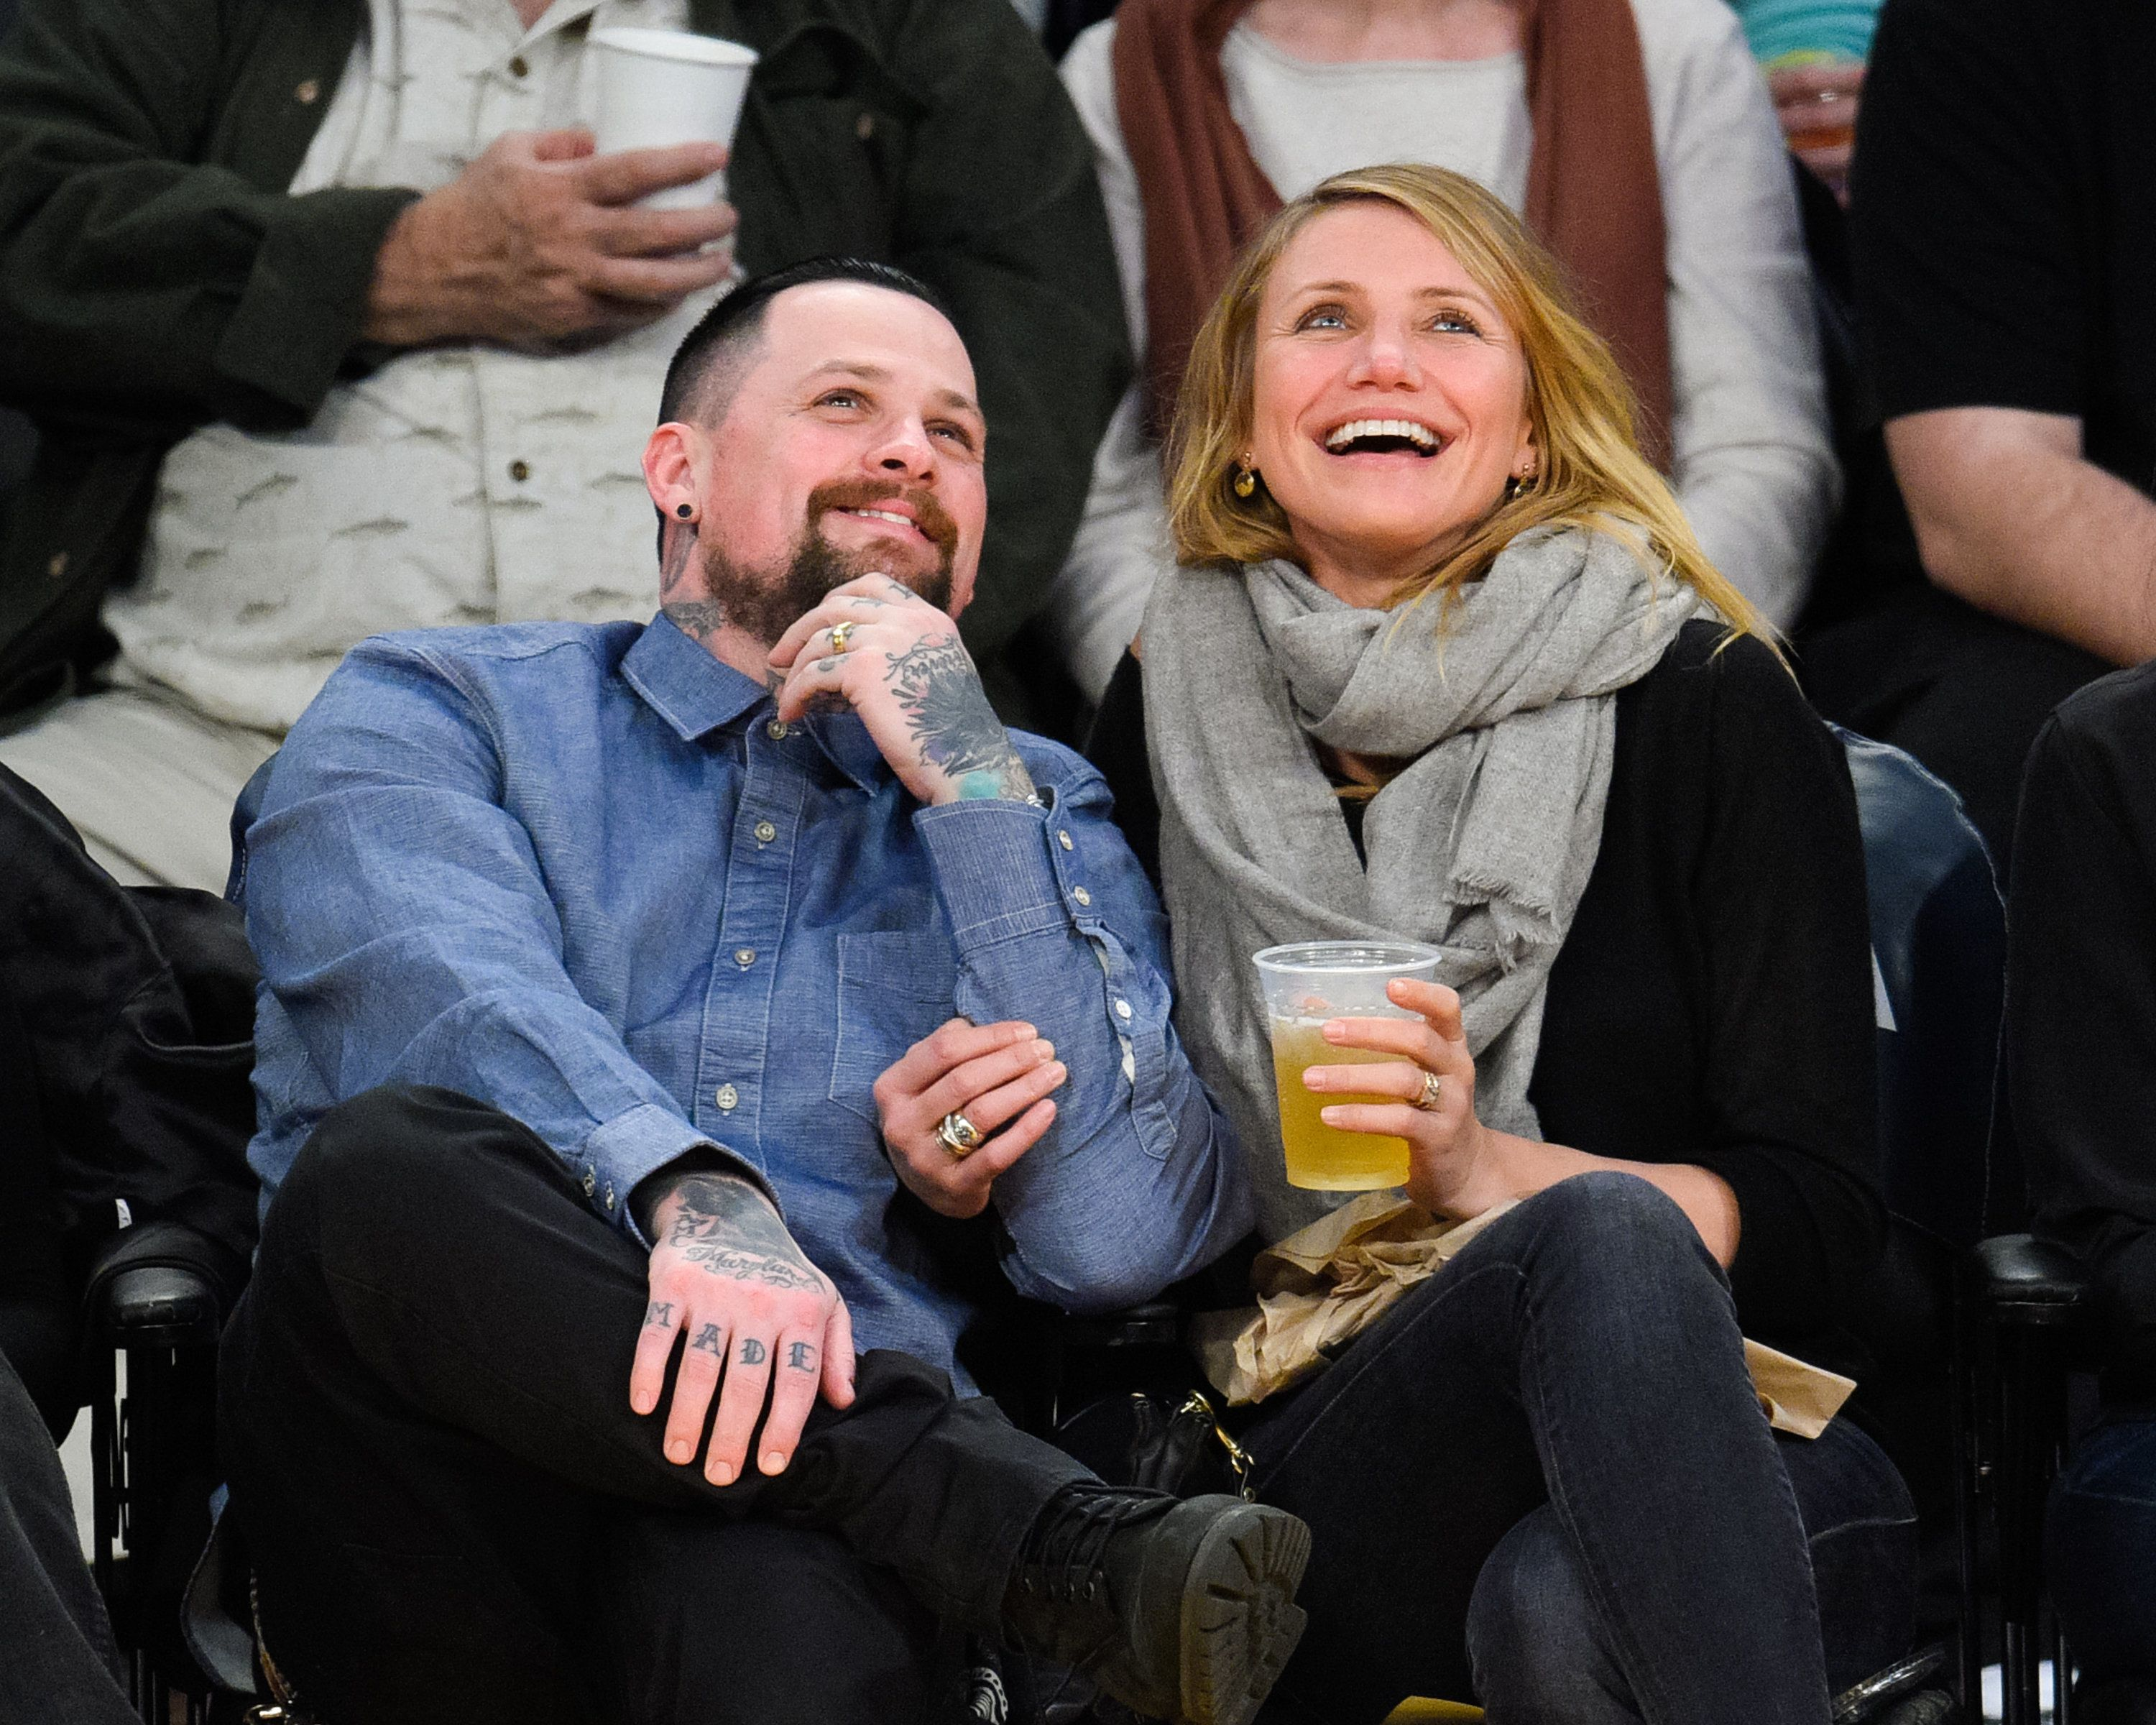 LOS ANGELES, CA - JANUARY 27:  Benji Madden (L) and Cameron Diaz attend a basketball game between the Washington Wizards and the Los Angeles Lakers at Staples Center on January 27, 2015 in Los Angeles, California.  (Photo by Noel Vasquez/GC Images)